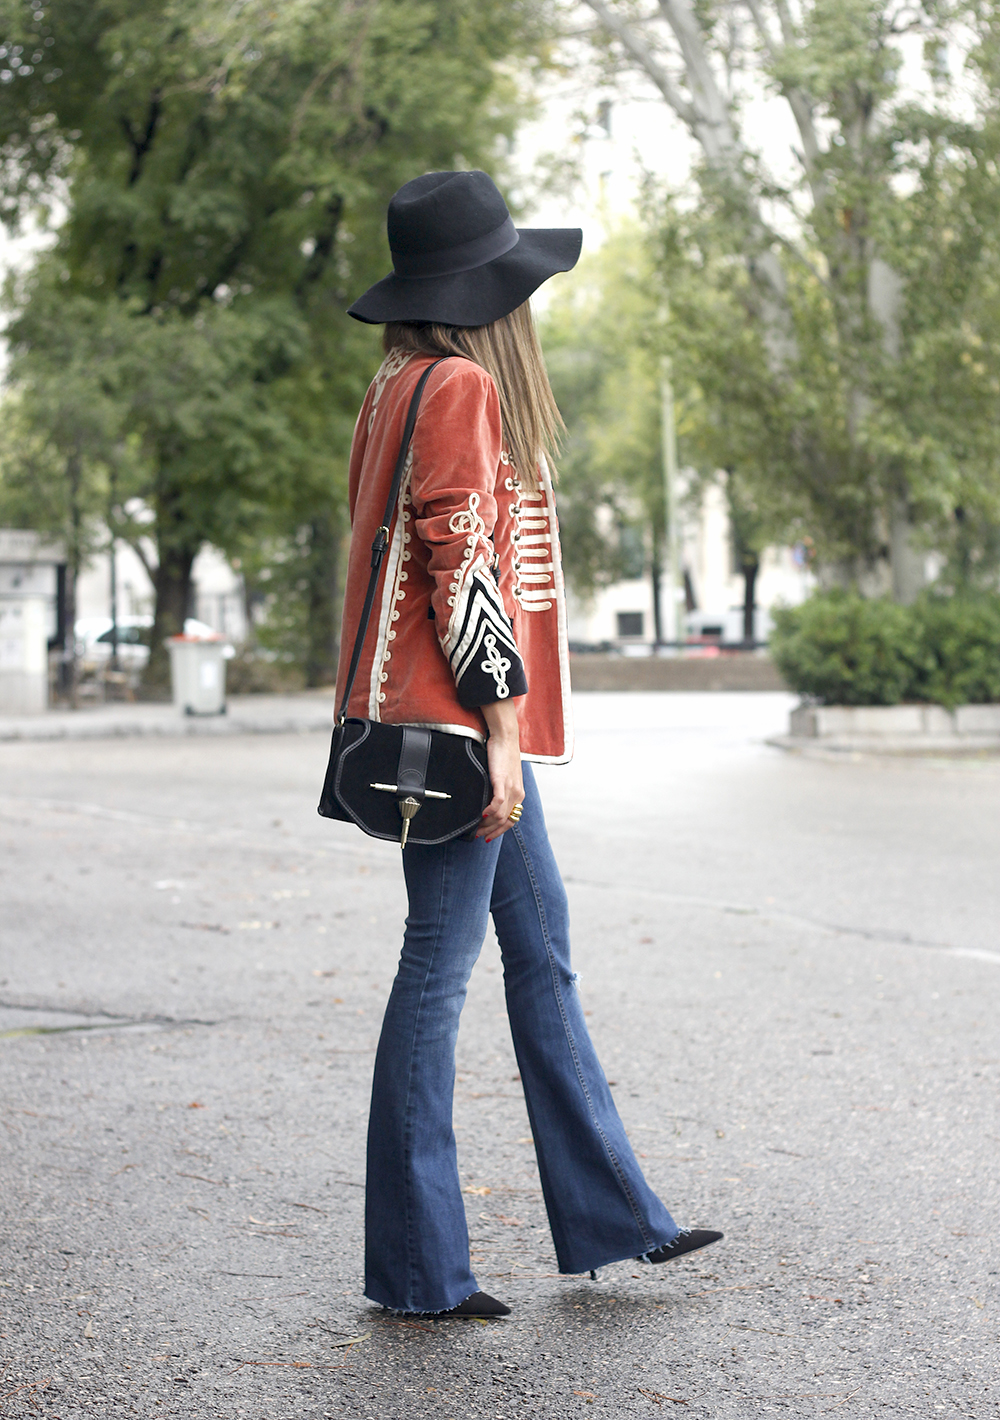 velvet jacket jeans hat rainny day heels accessories outfit style fashion01